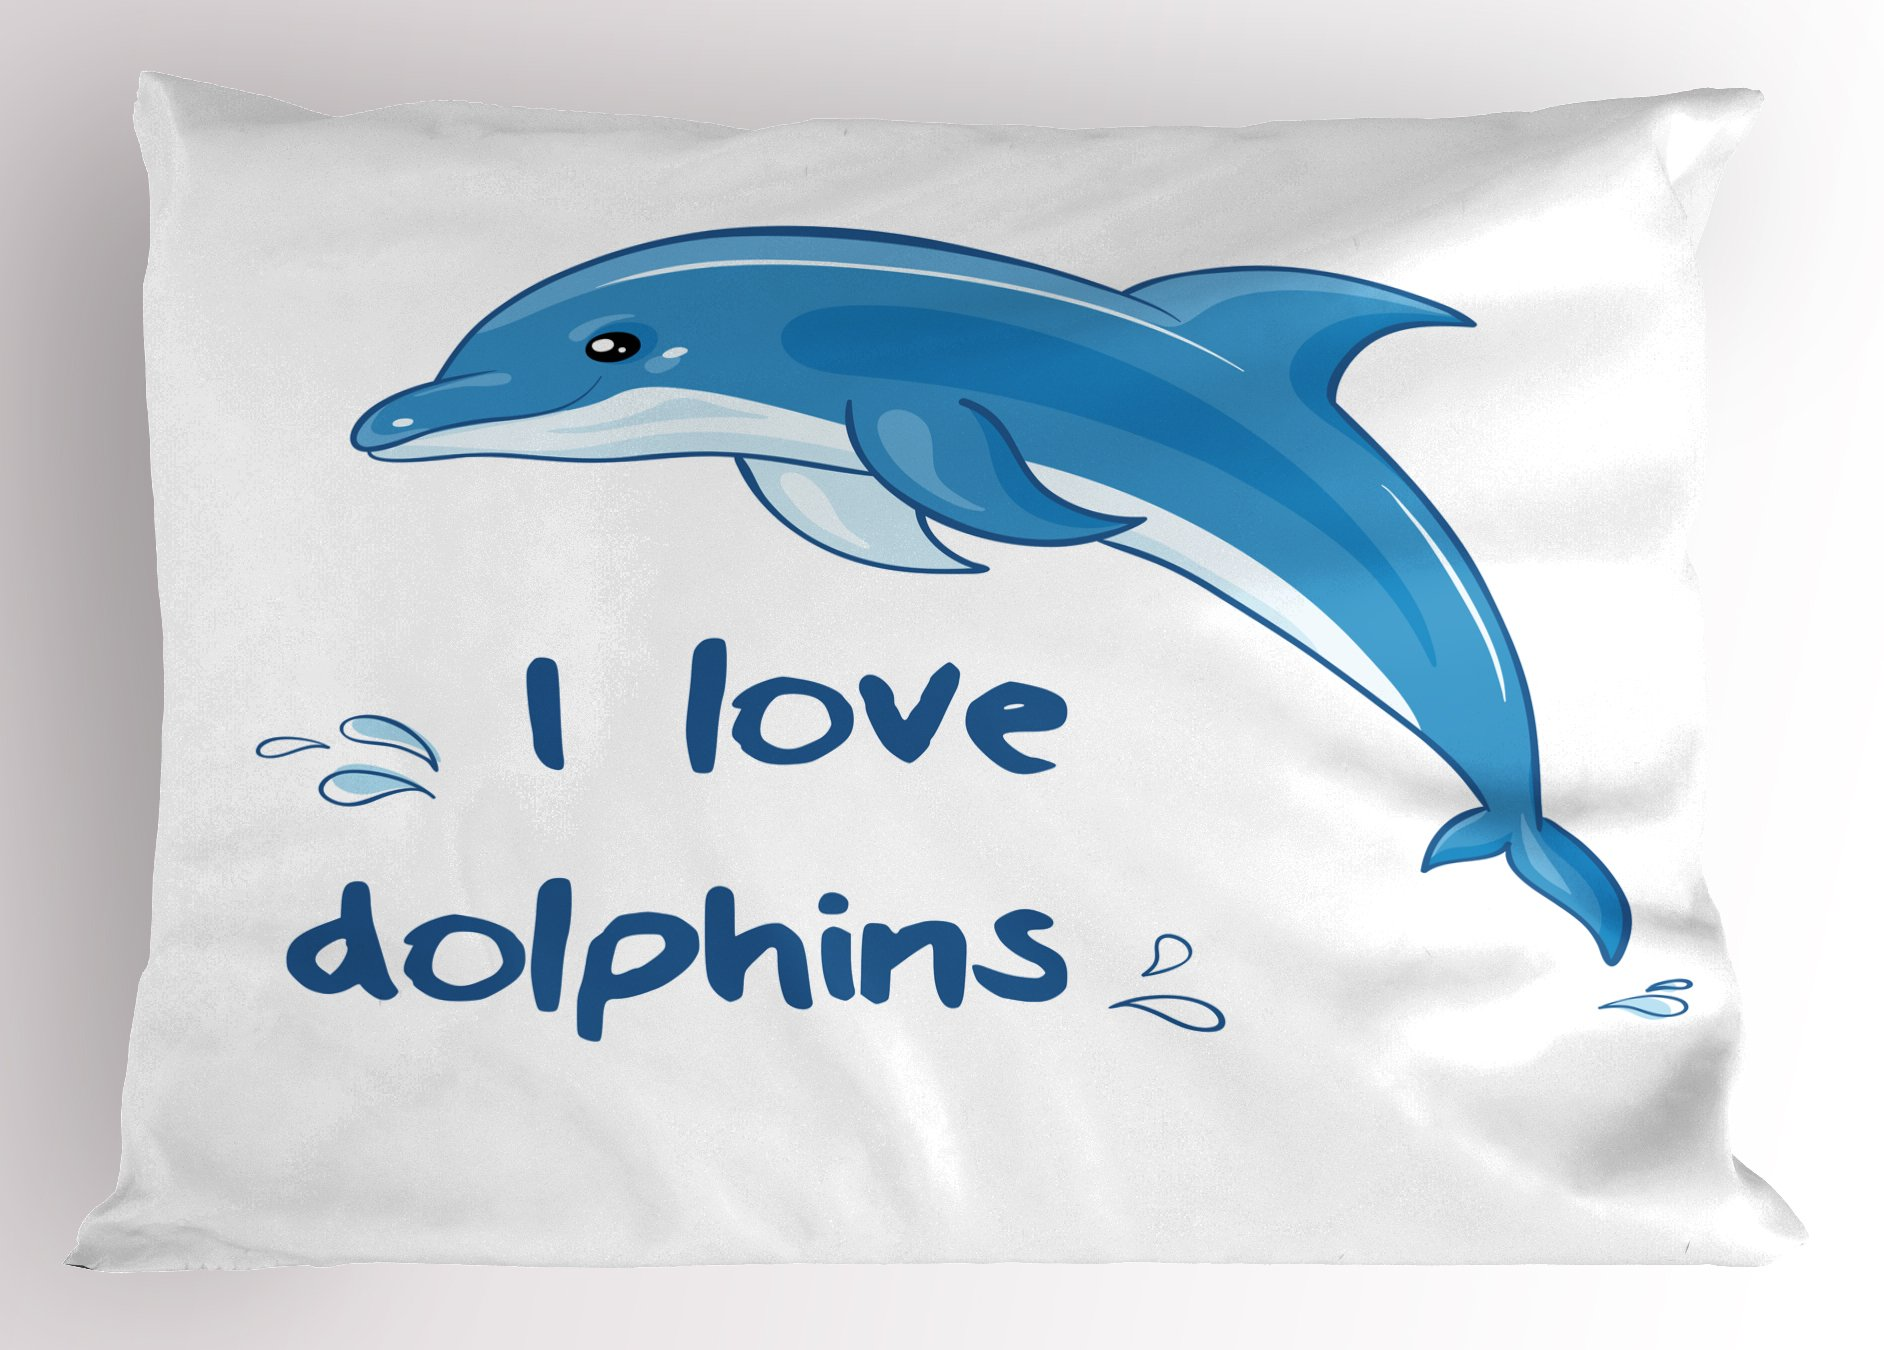 Ambesonne Dolphin Pillow Sham, Cartoon Style Ocean Animal with I Love Dolphins Quote and Water Splashes Image, Decorative Standard Size Printed Pillowcase, 26 X 20 inches, Blue White